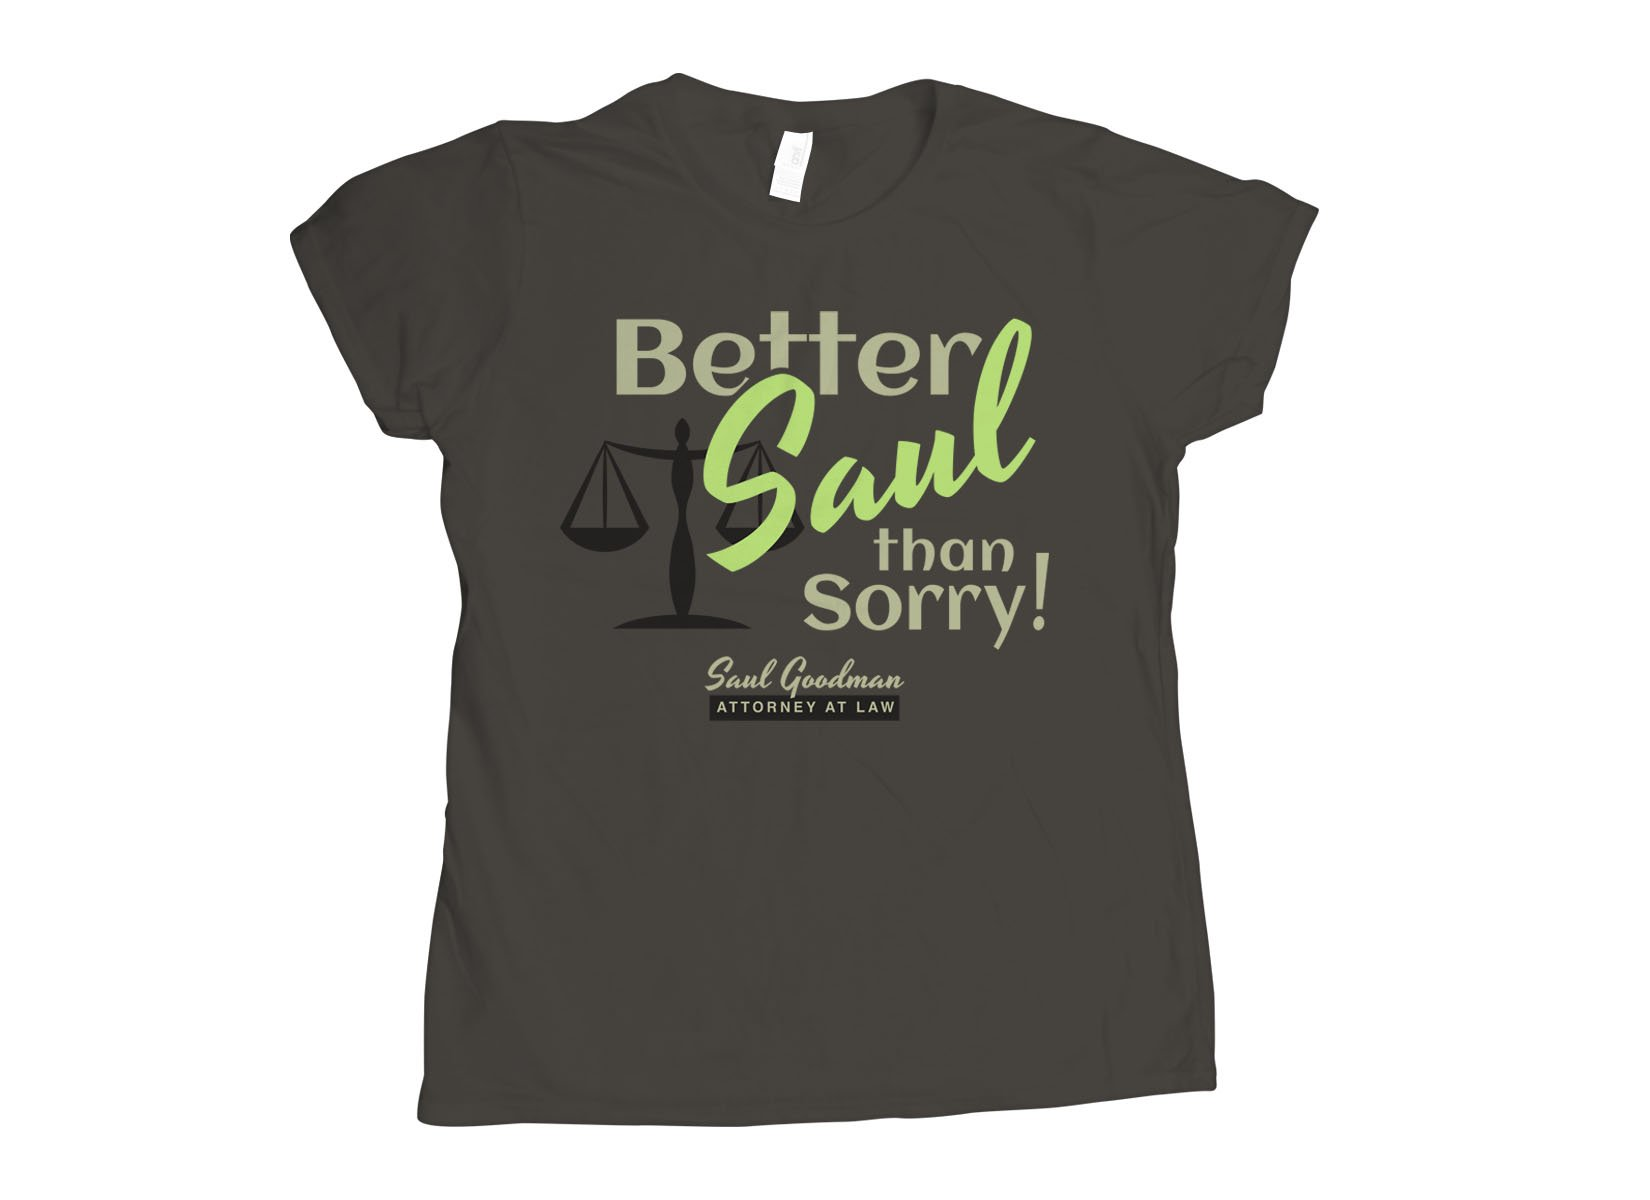 Better Saul Than Sorry! on Womens T-Shirt